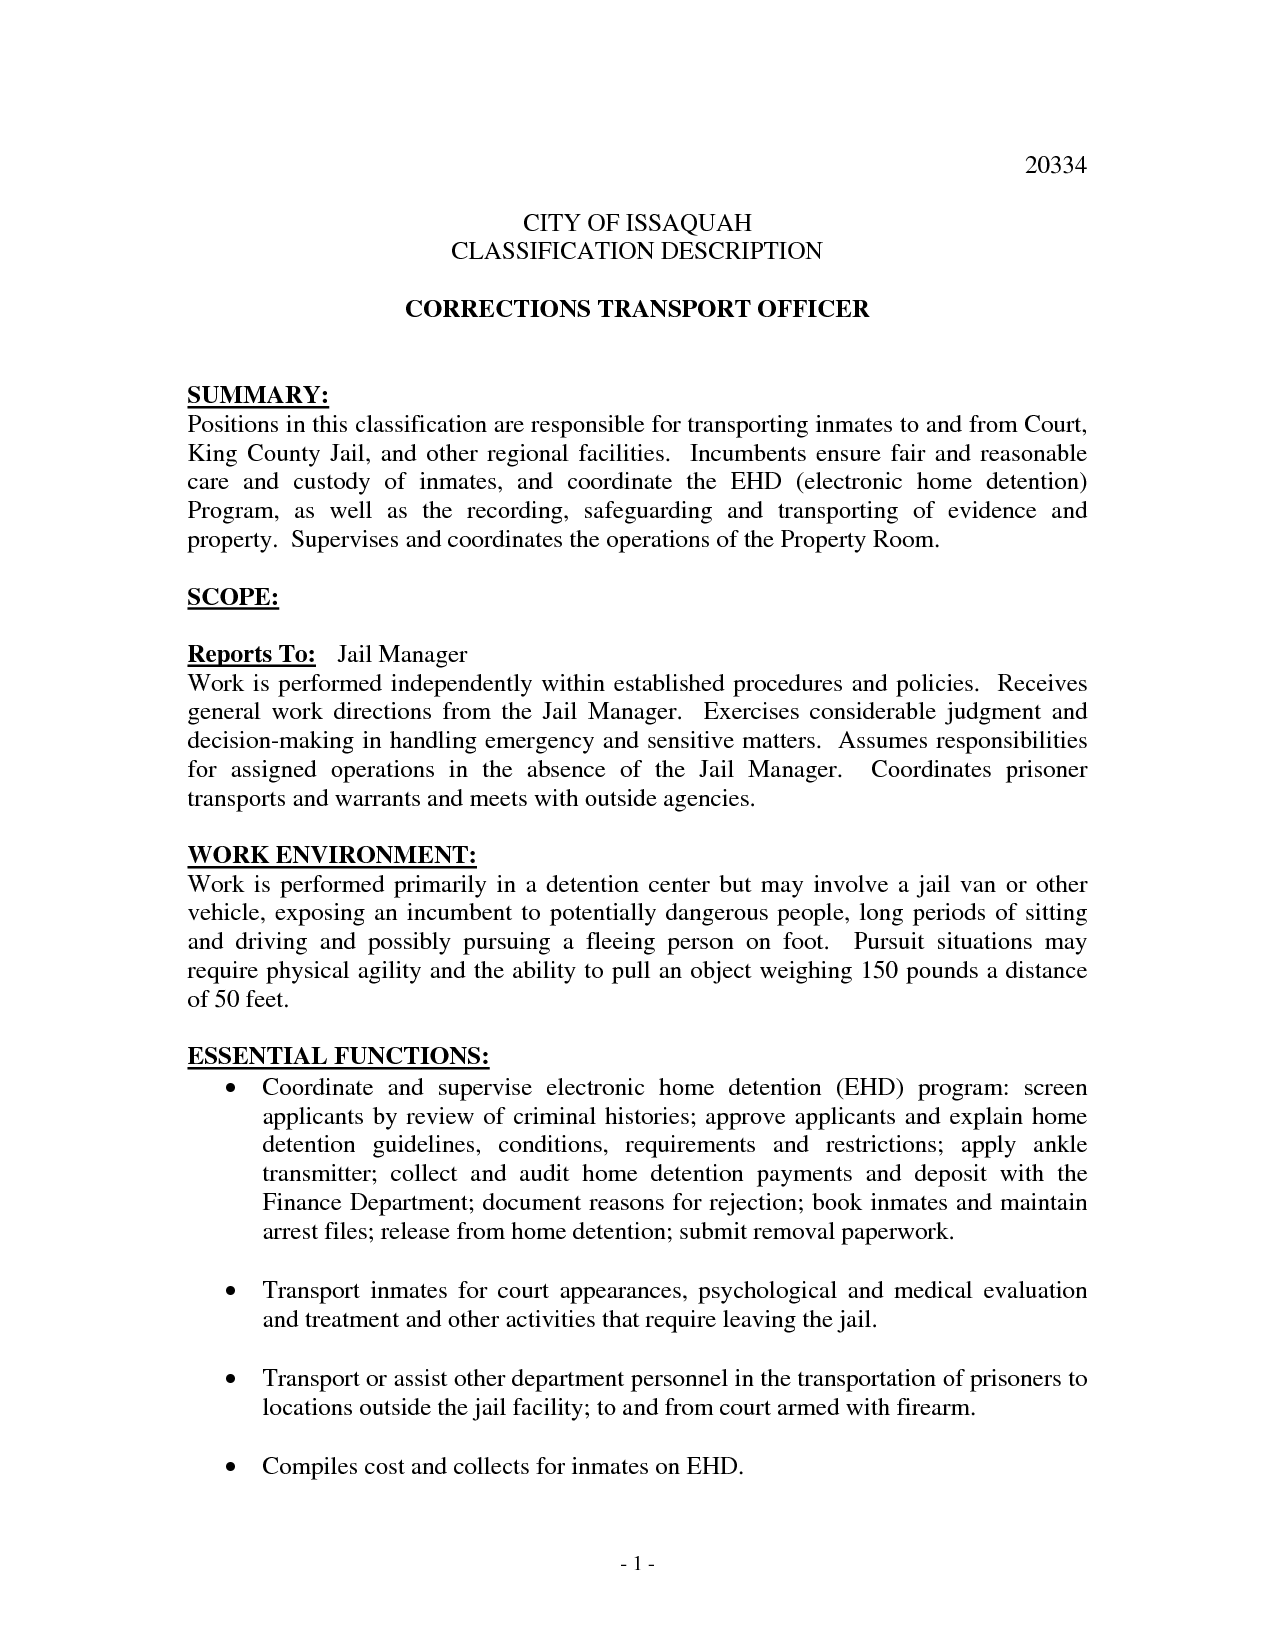 Correctional Officer Resume No Experience   Http://www.jobresume.website/  Corrections Officer Resume